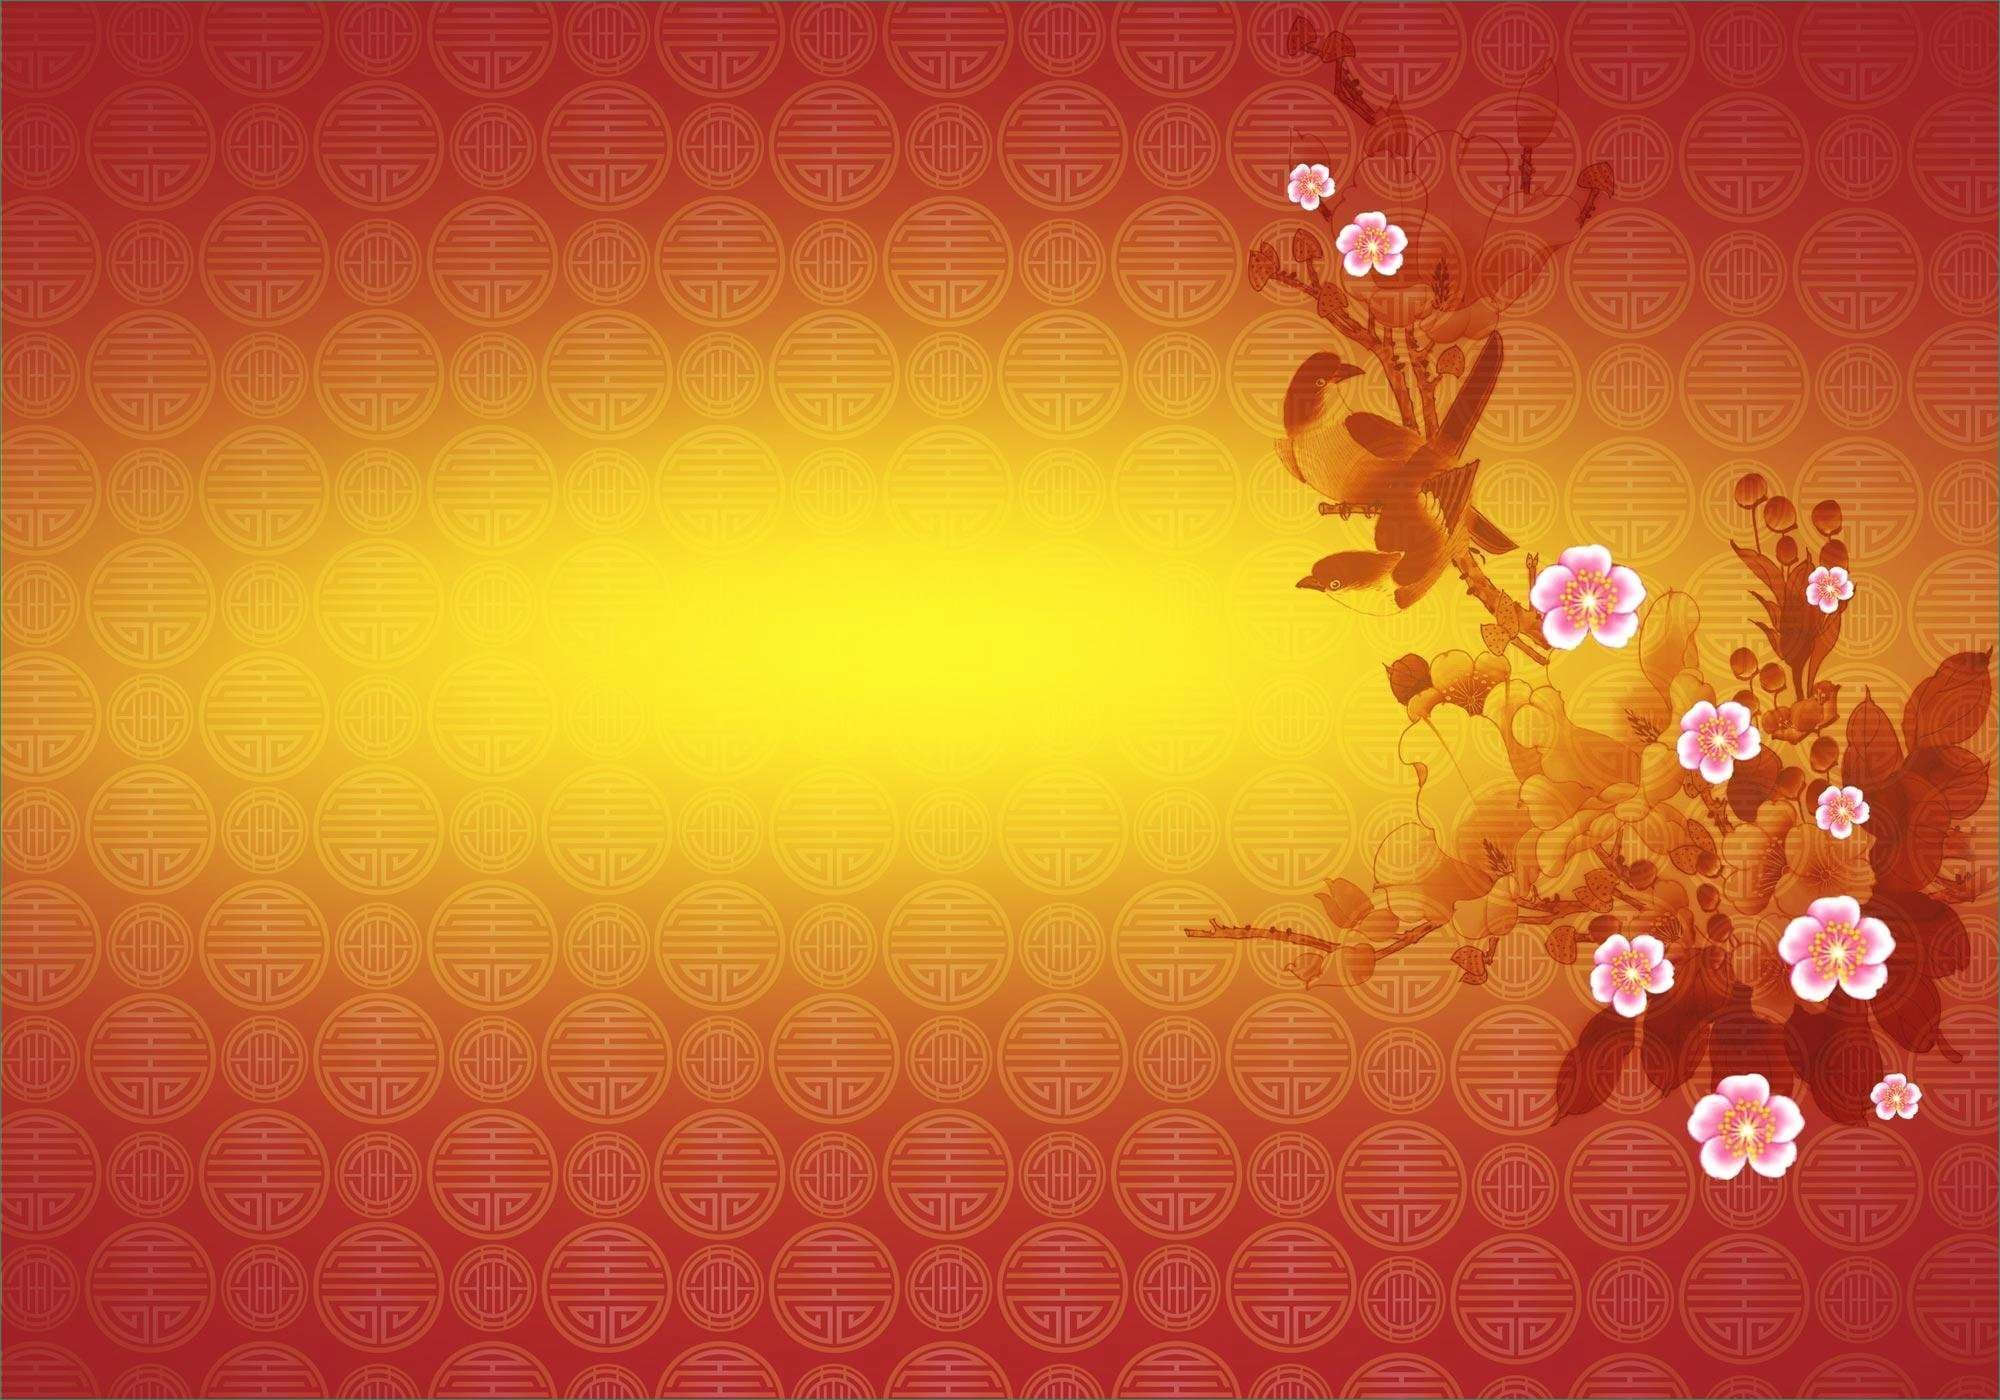 2000x1400 ... Chinese New Year Ppt Comfortable Chinese Backgrounds Wallpaper Cave ...